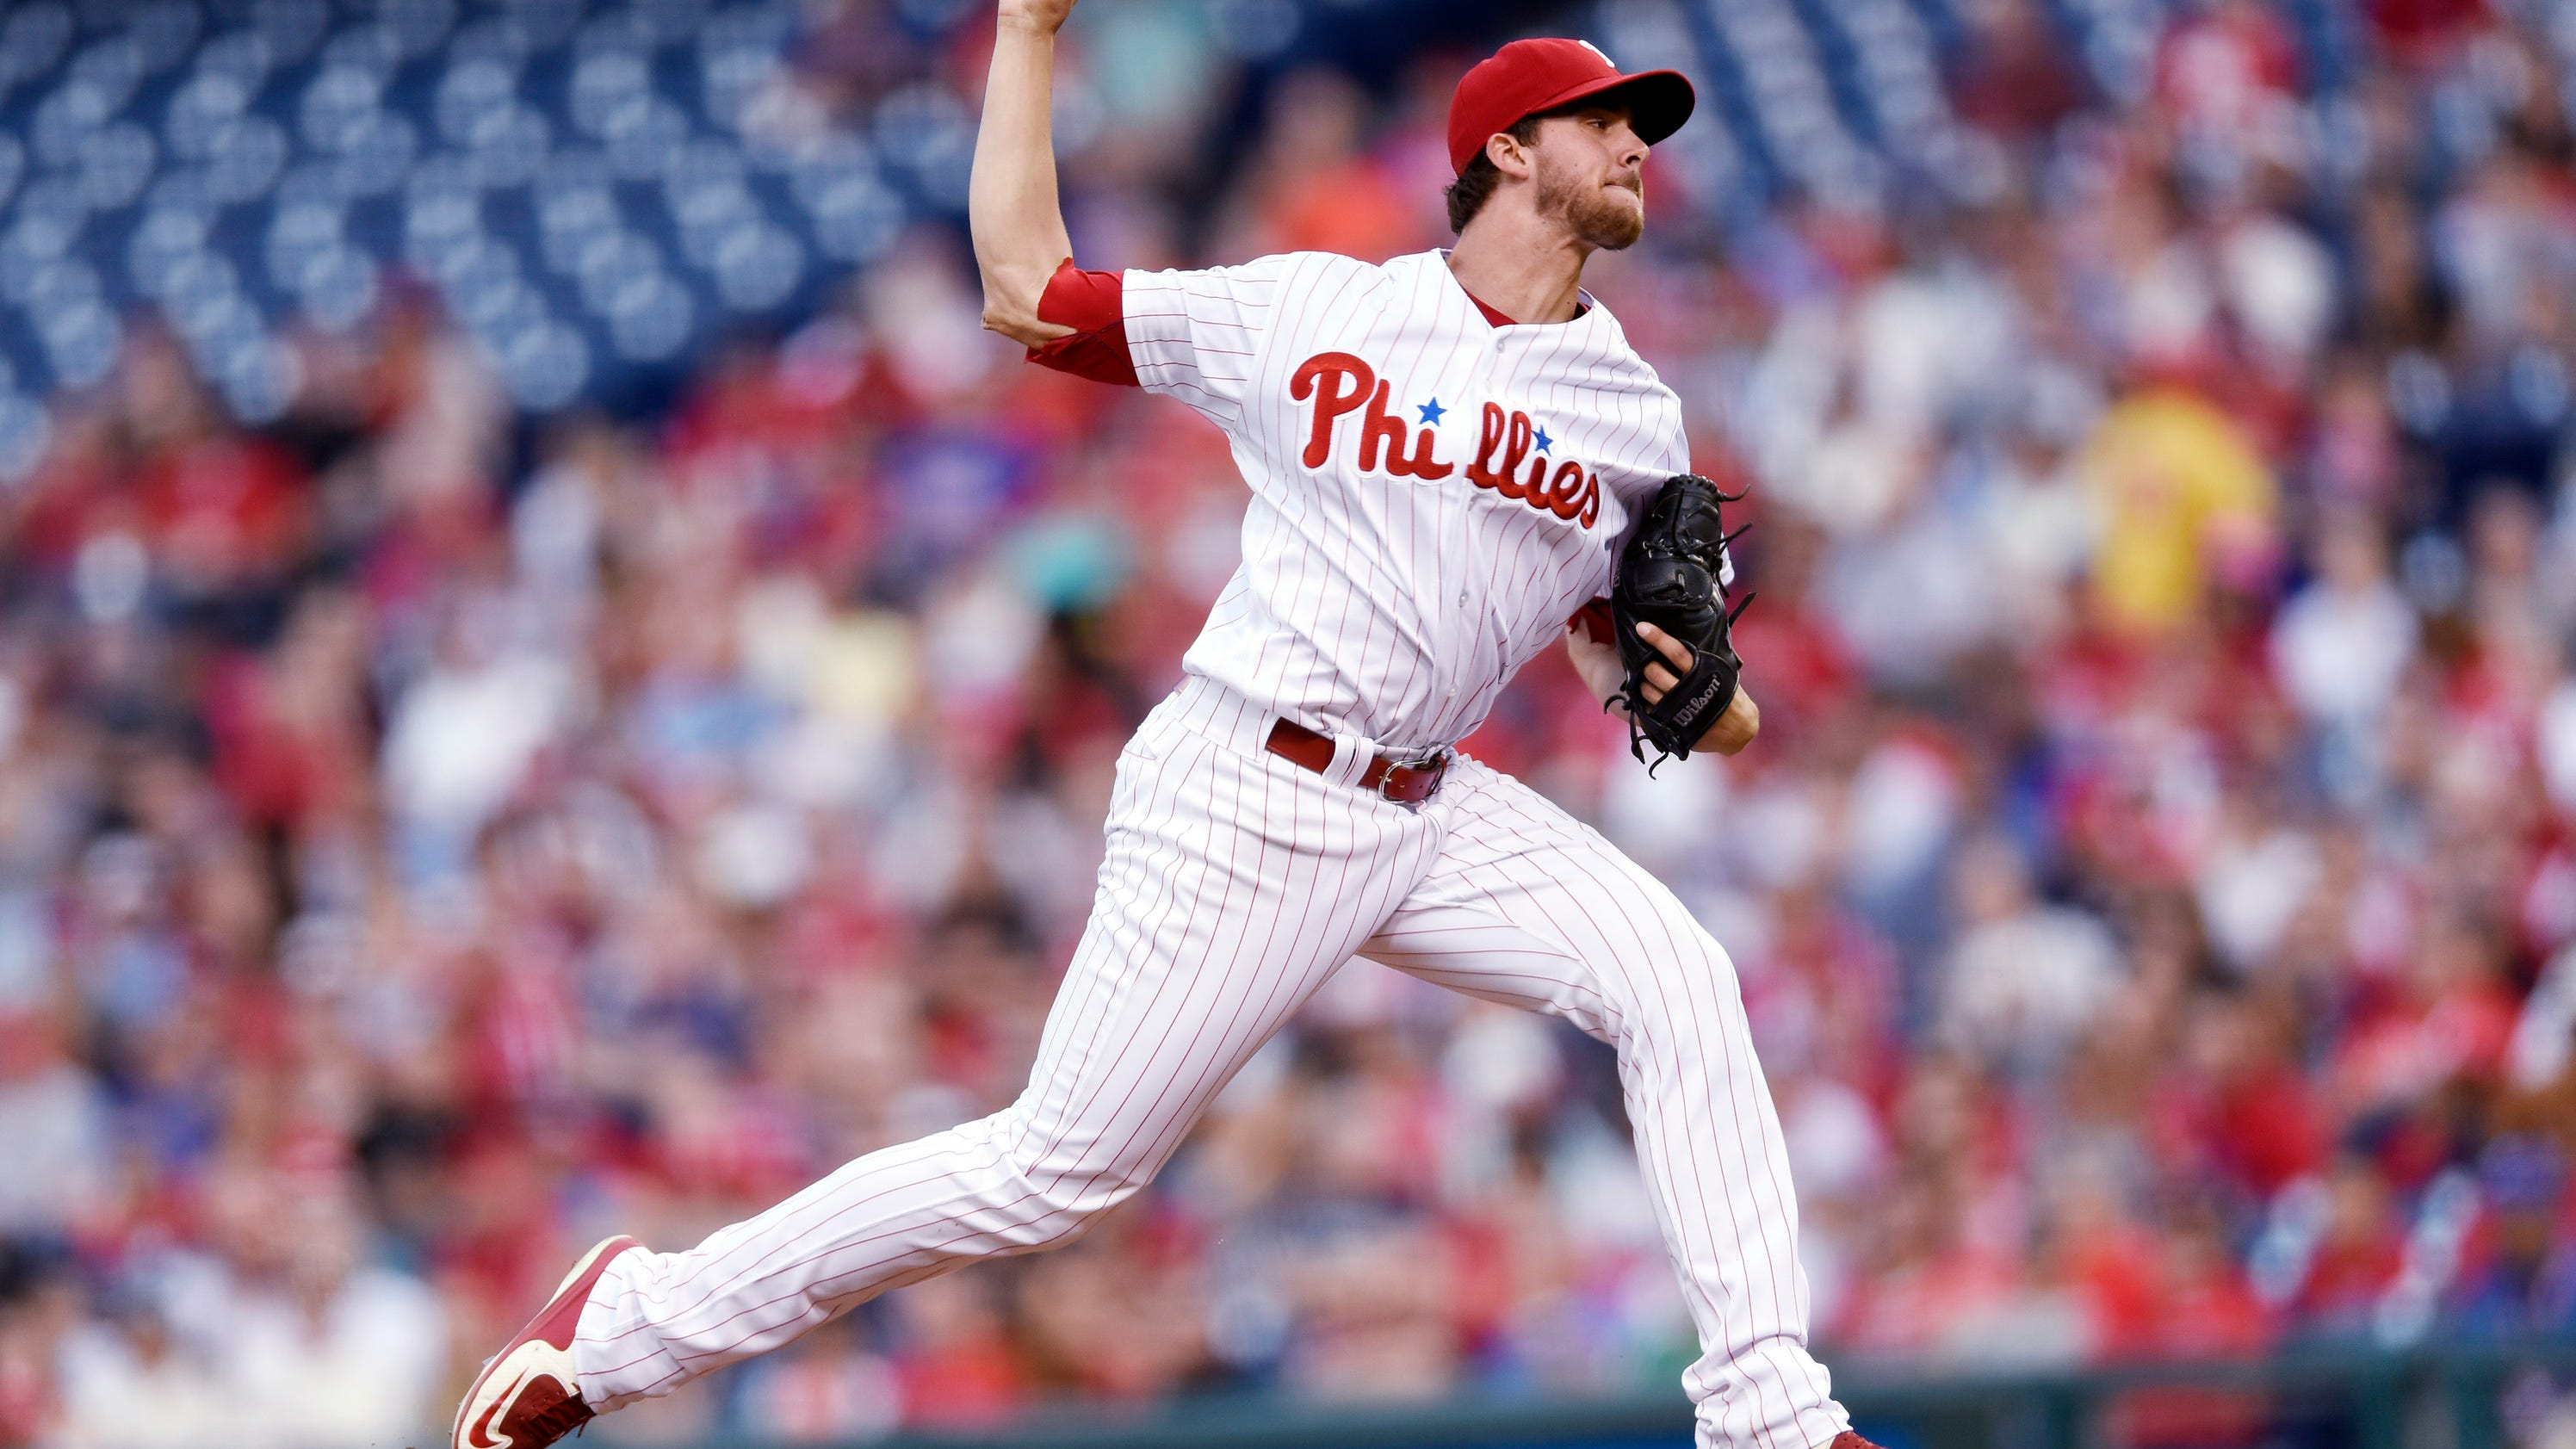 Nola, Phillies fall to Freeman-powered Braves 7-1